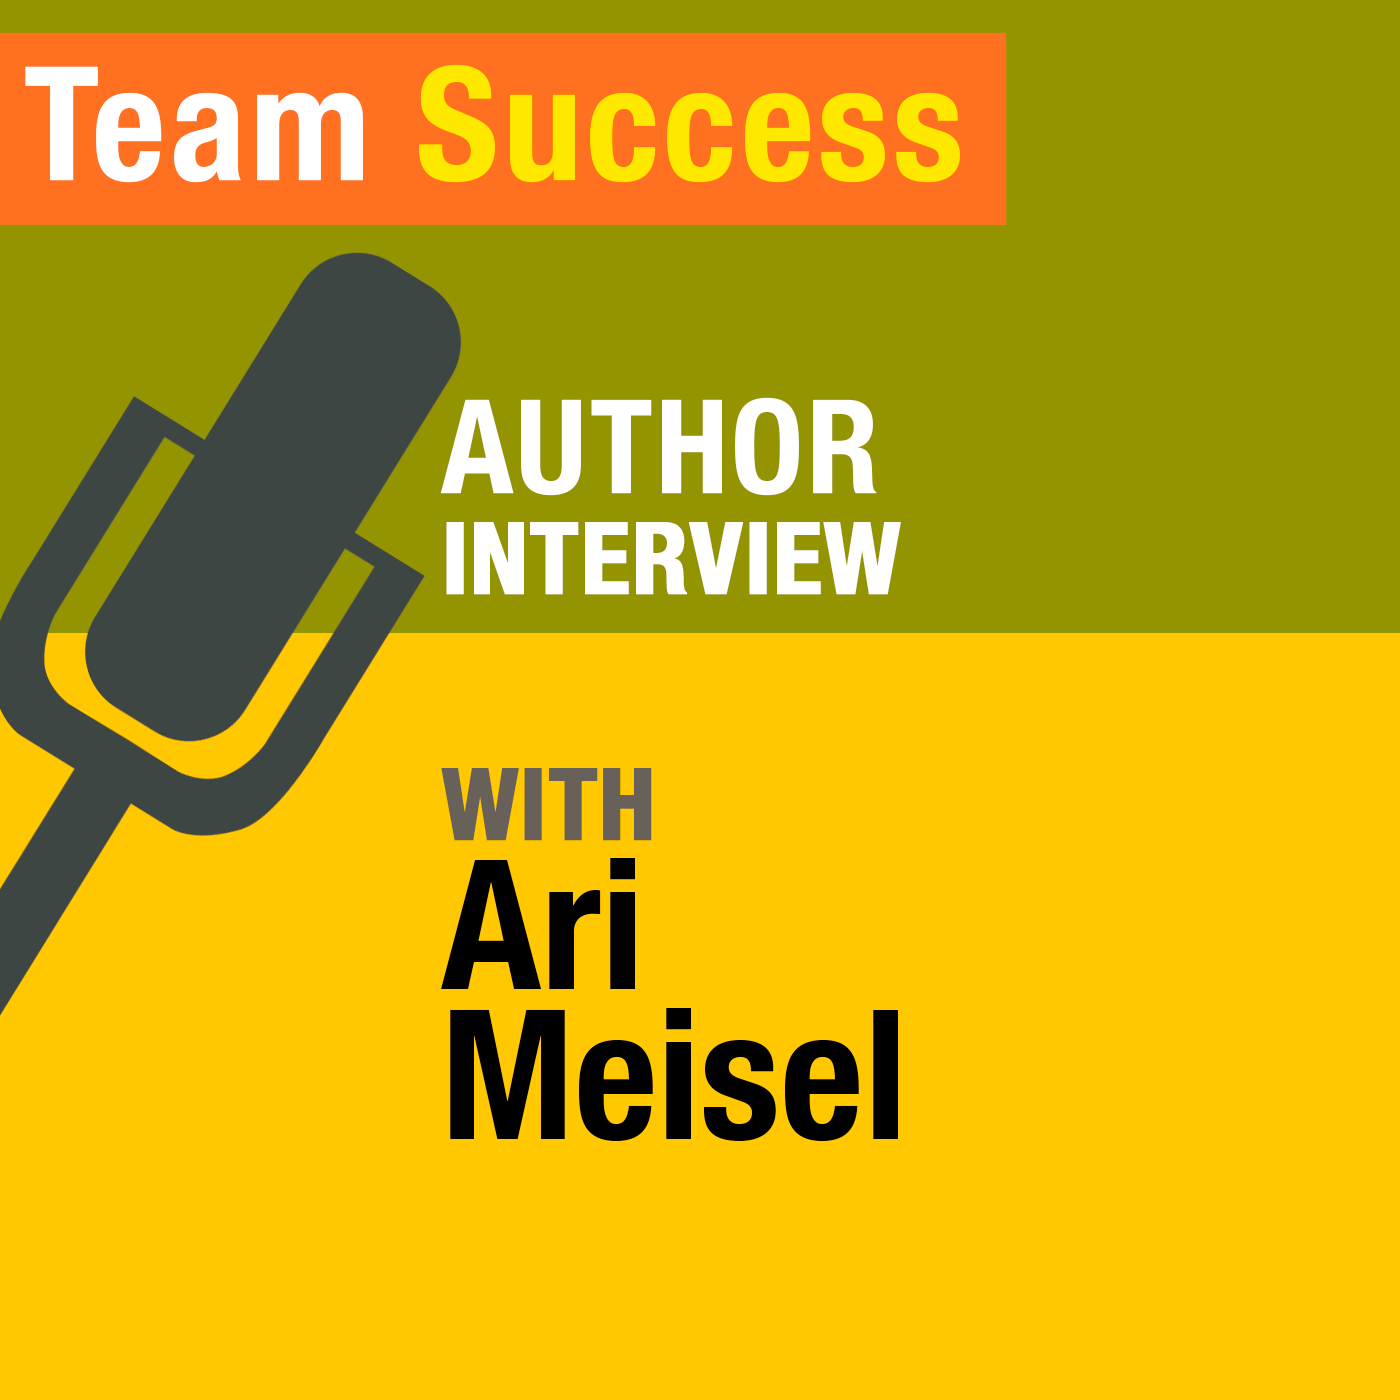 An Interview With Ari Meisel - Team Success Podcast